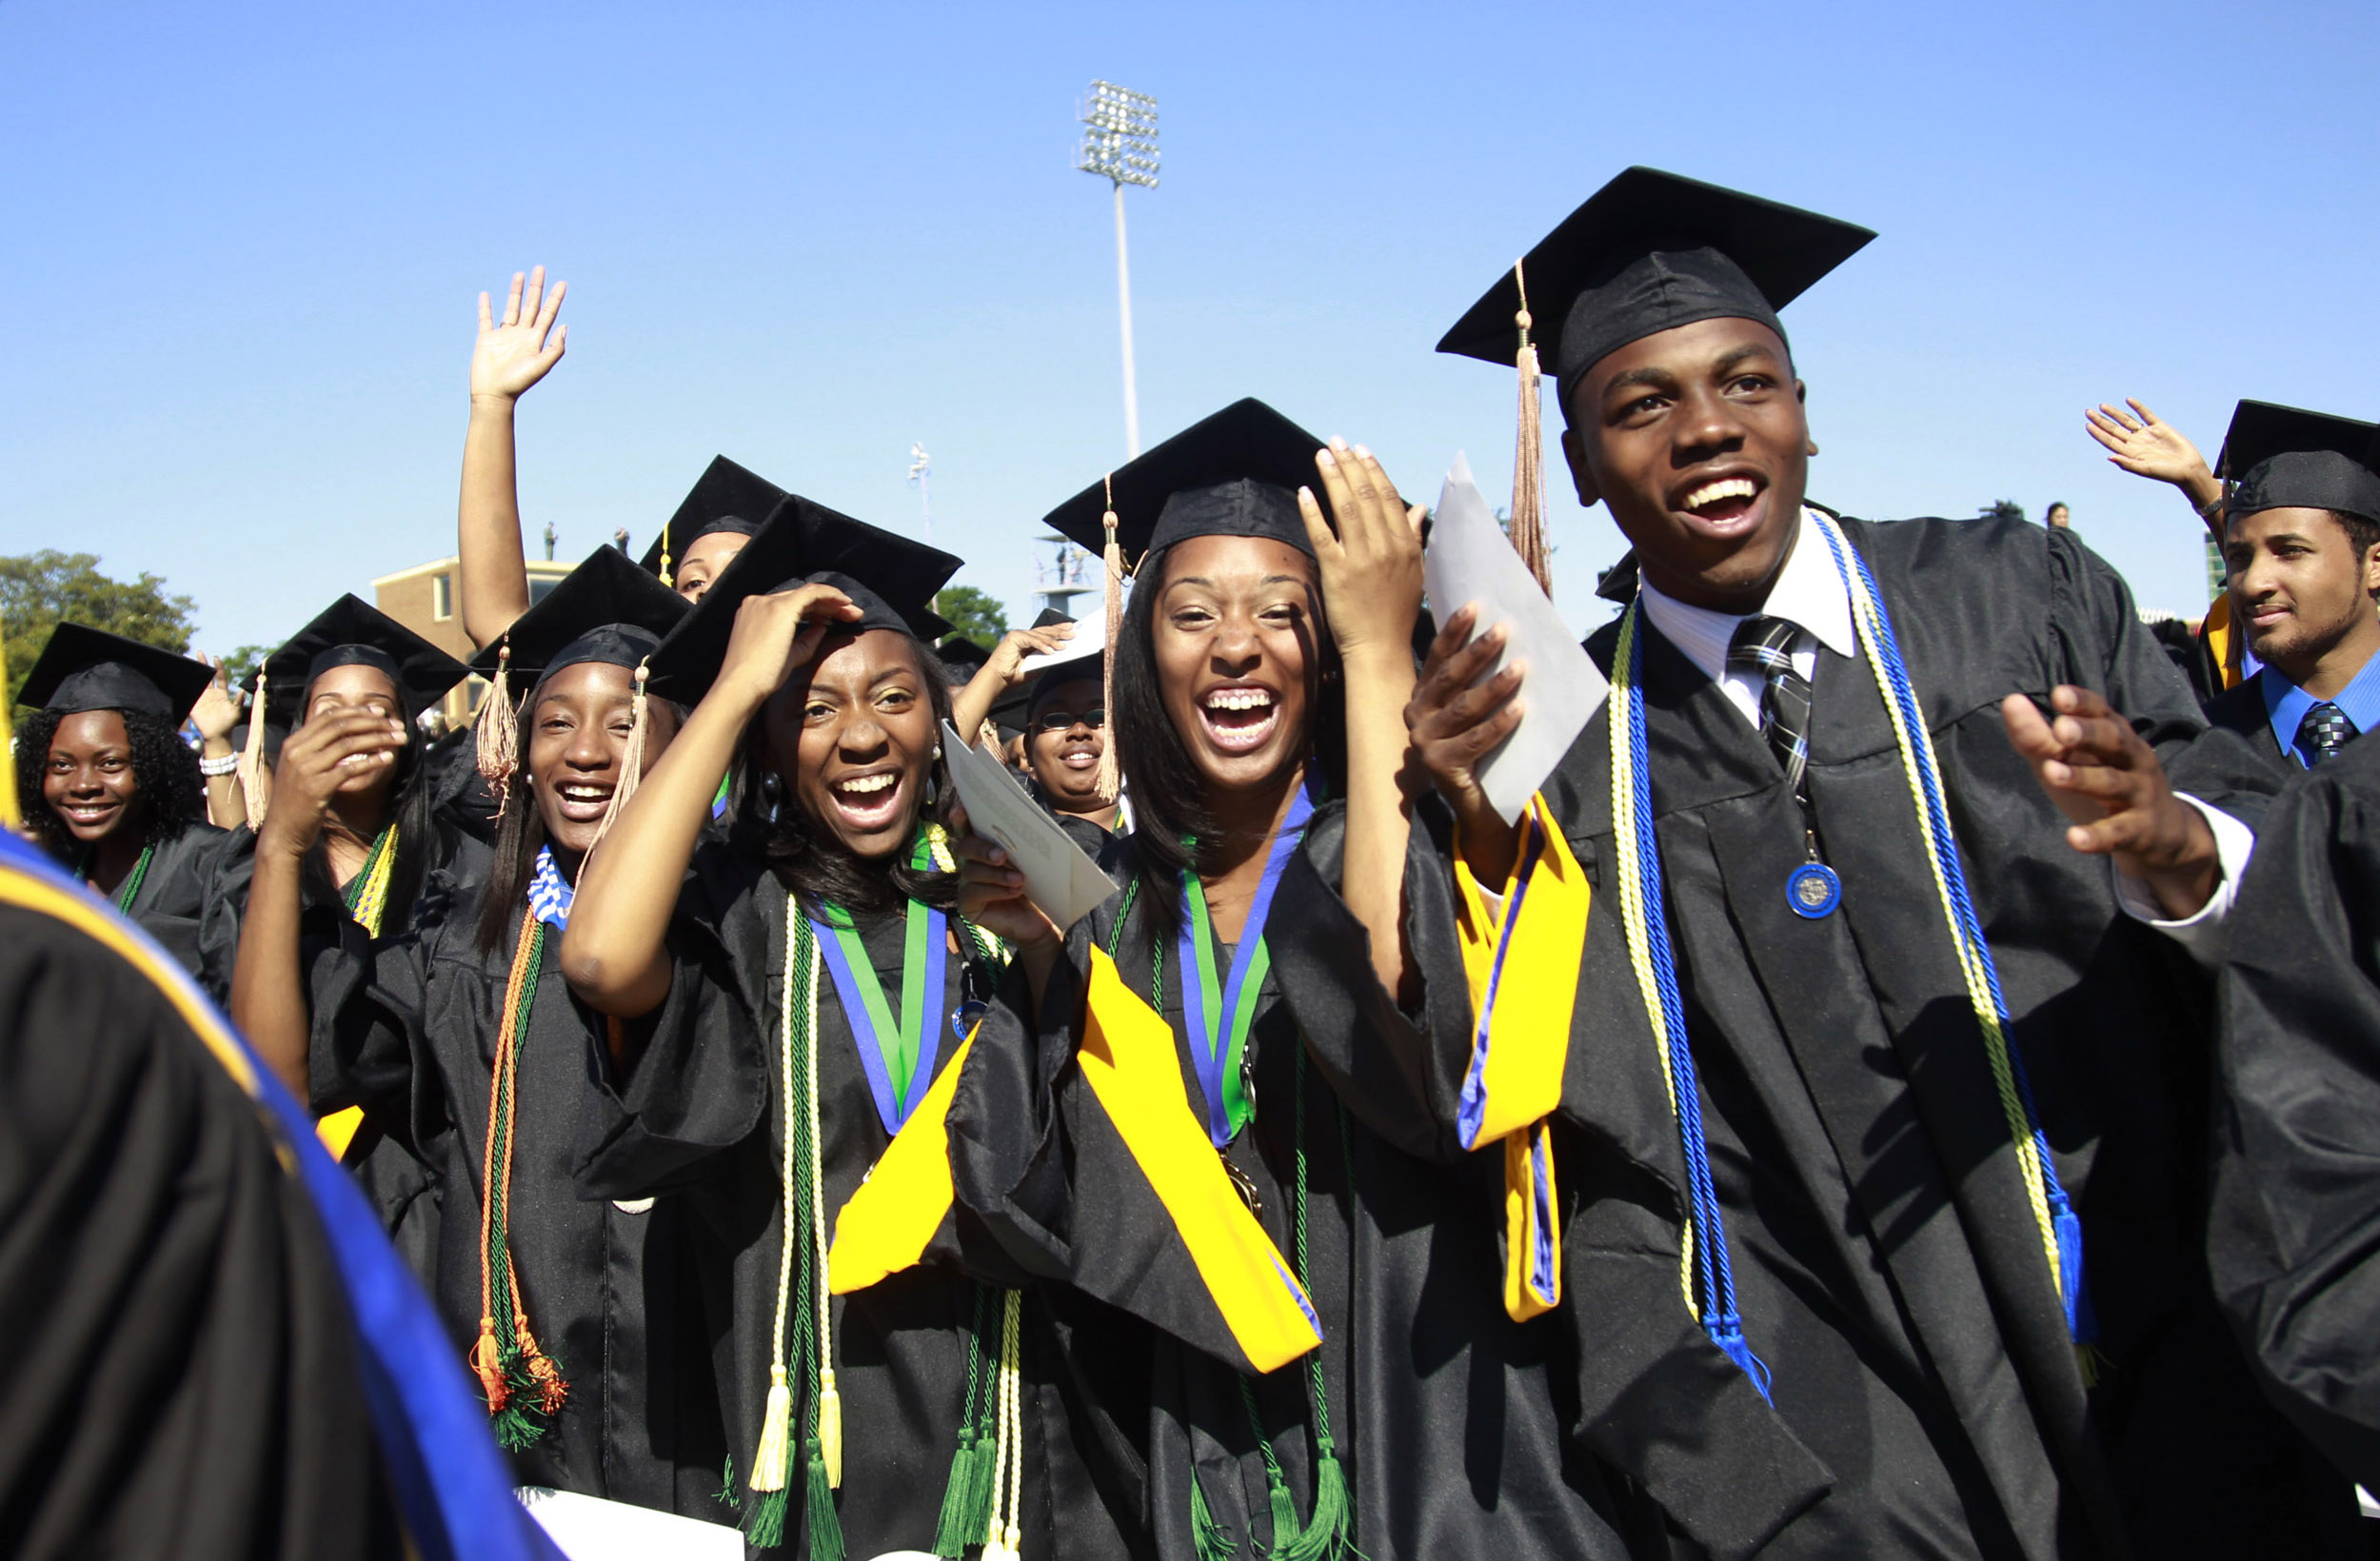 African-Americans over-represented among low-paying college majors ...